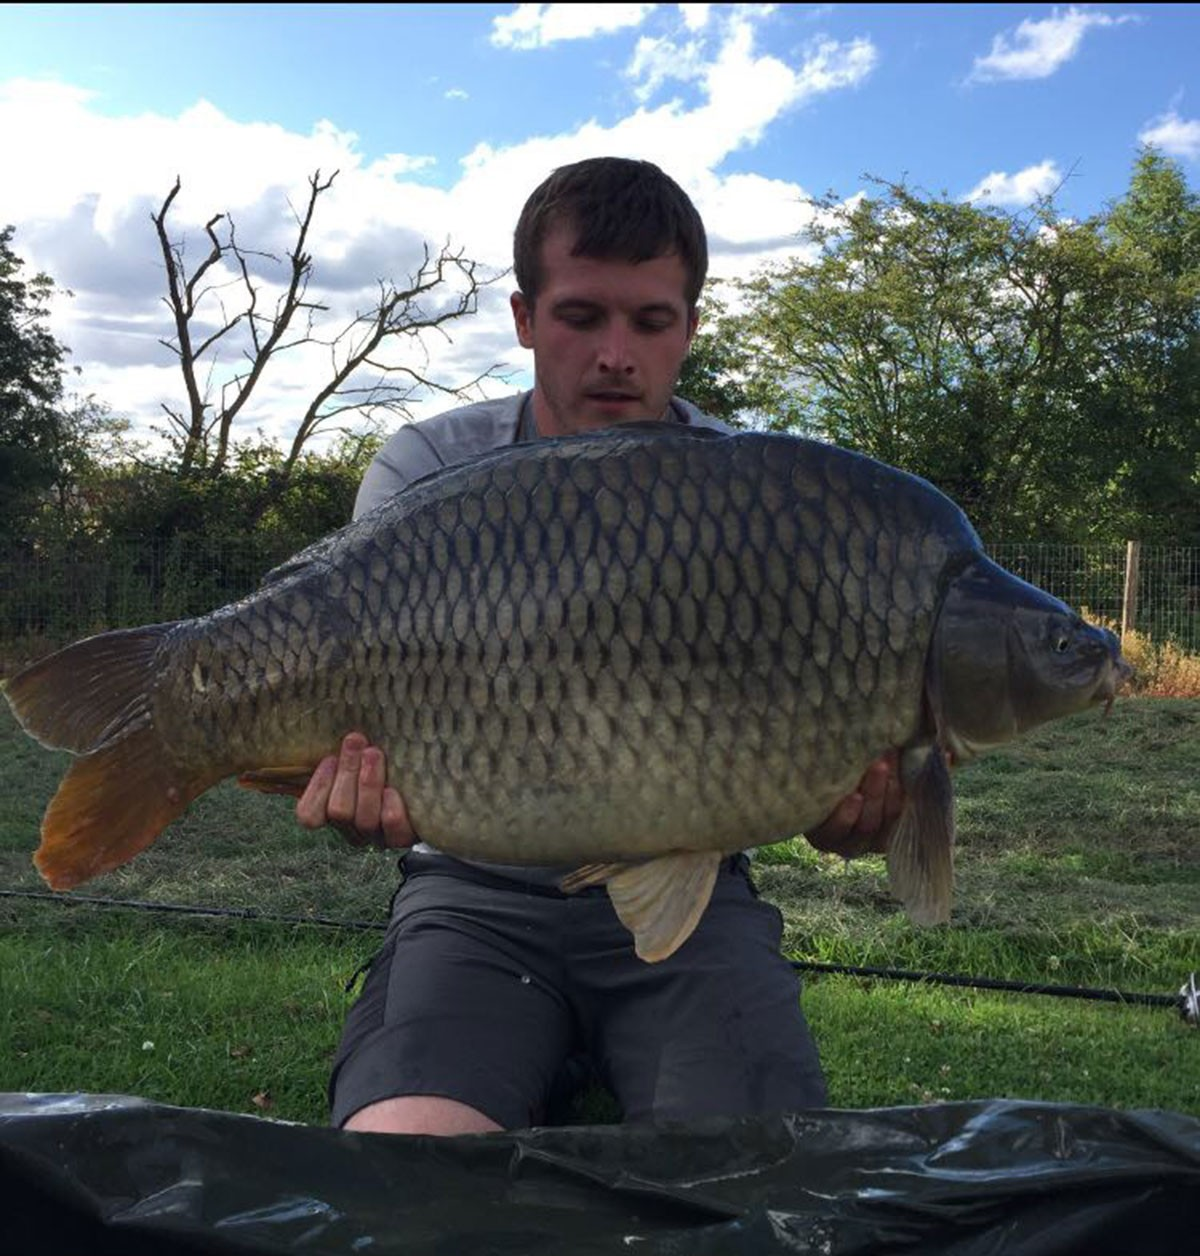 M Williams holding a 39-00 from RH Fisheries